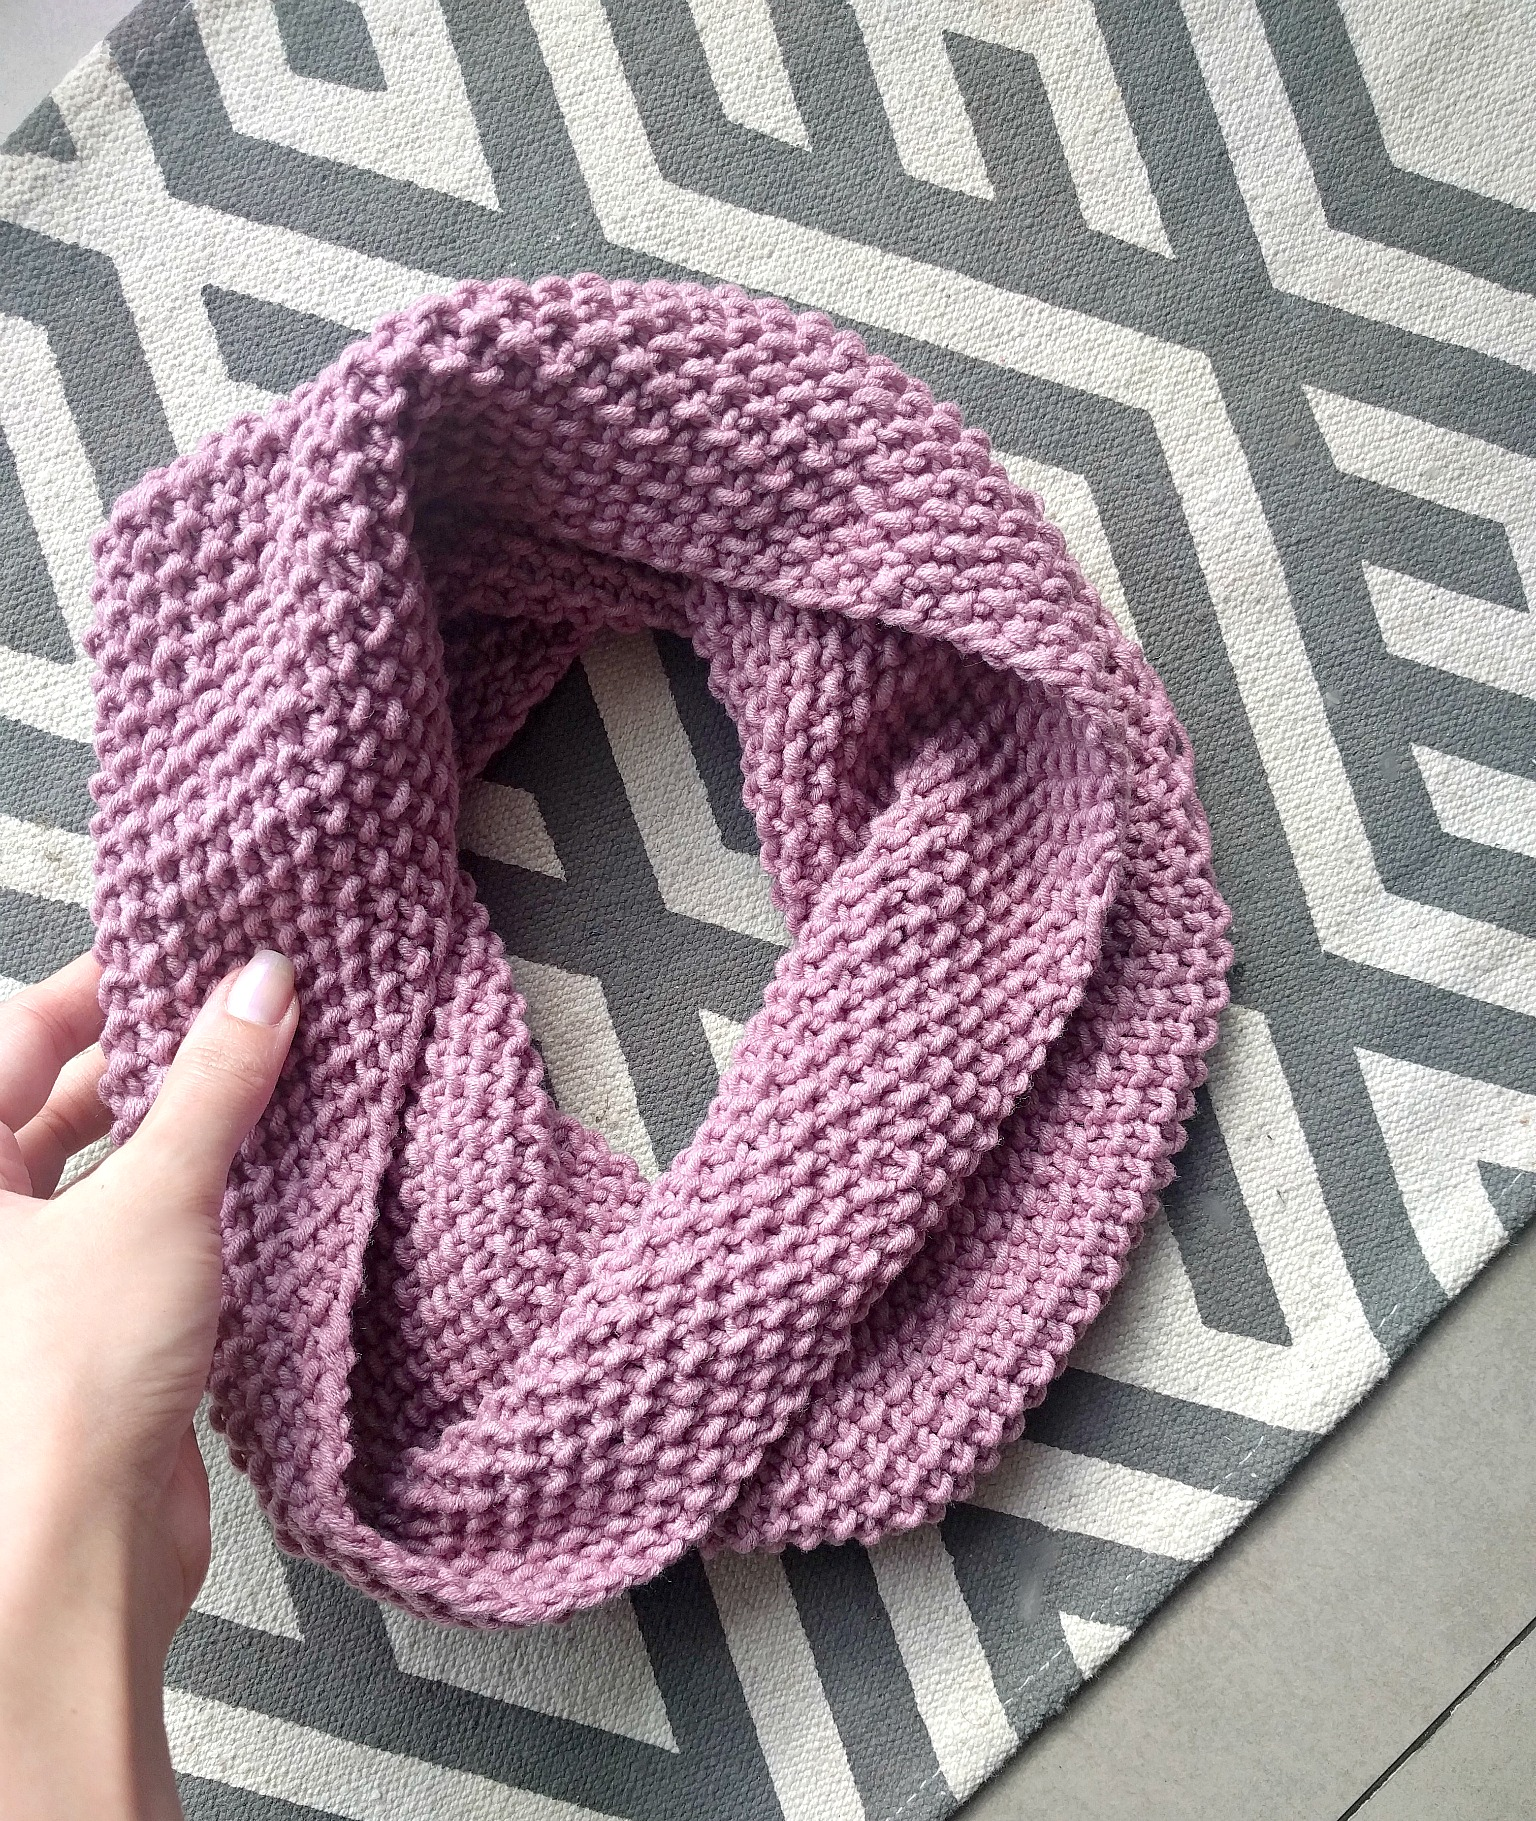 Free Knitting Patterns | The Snugglery | Yarn Blog